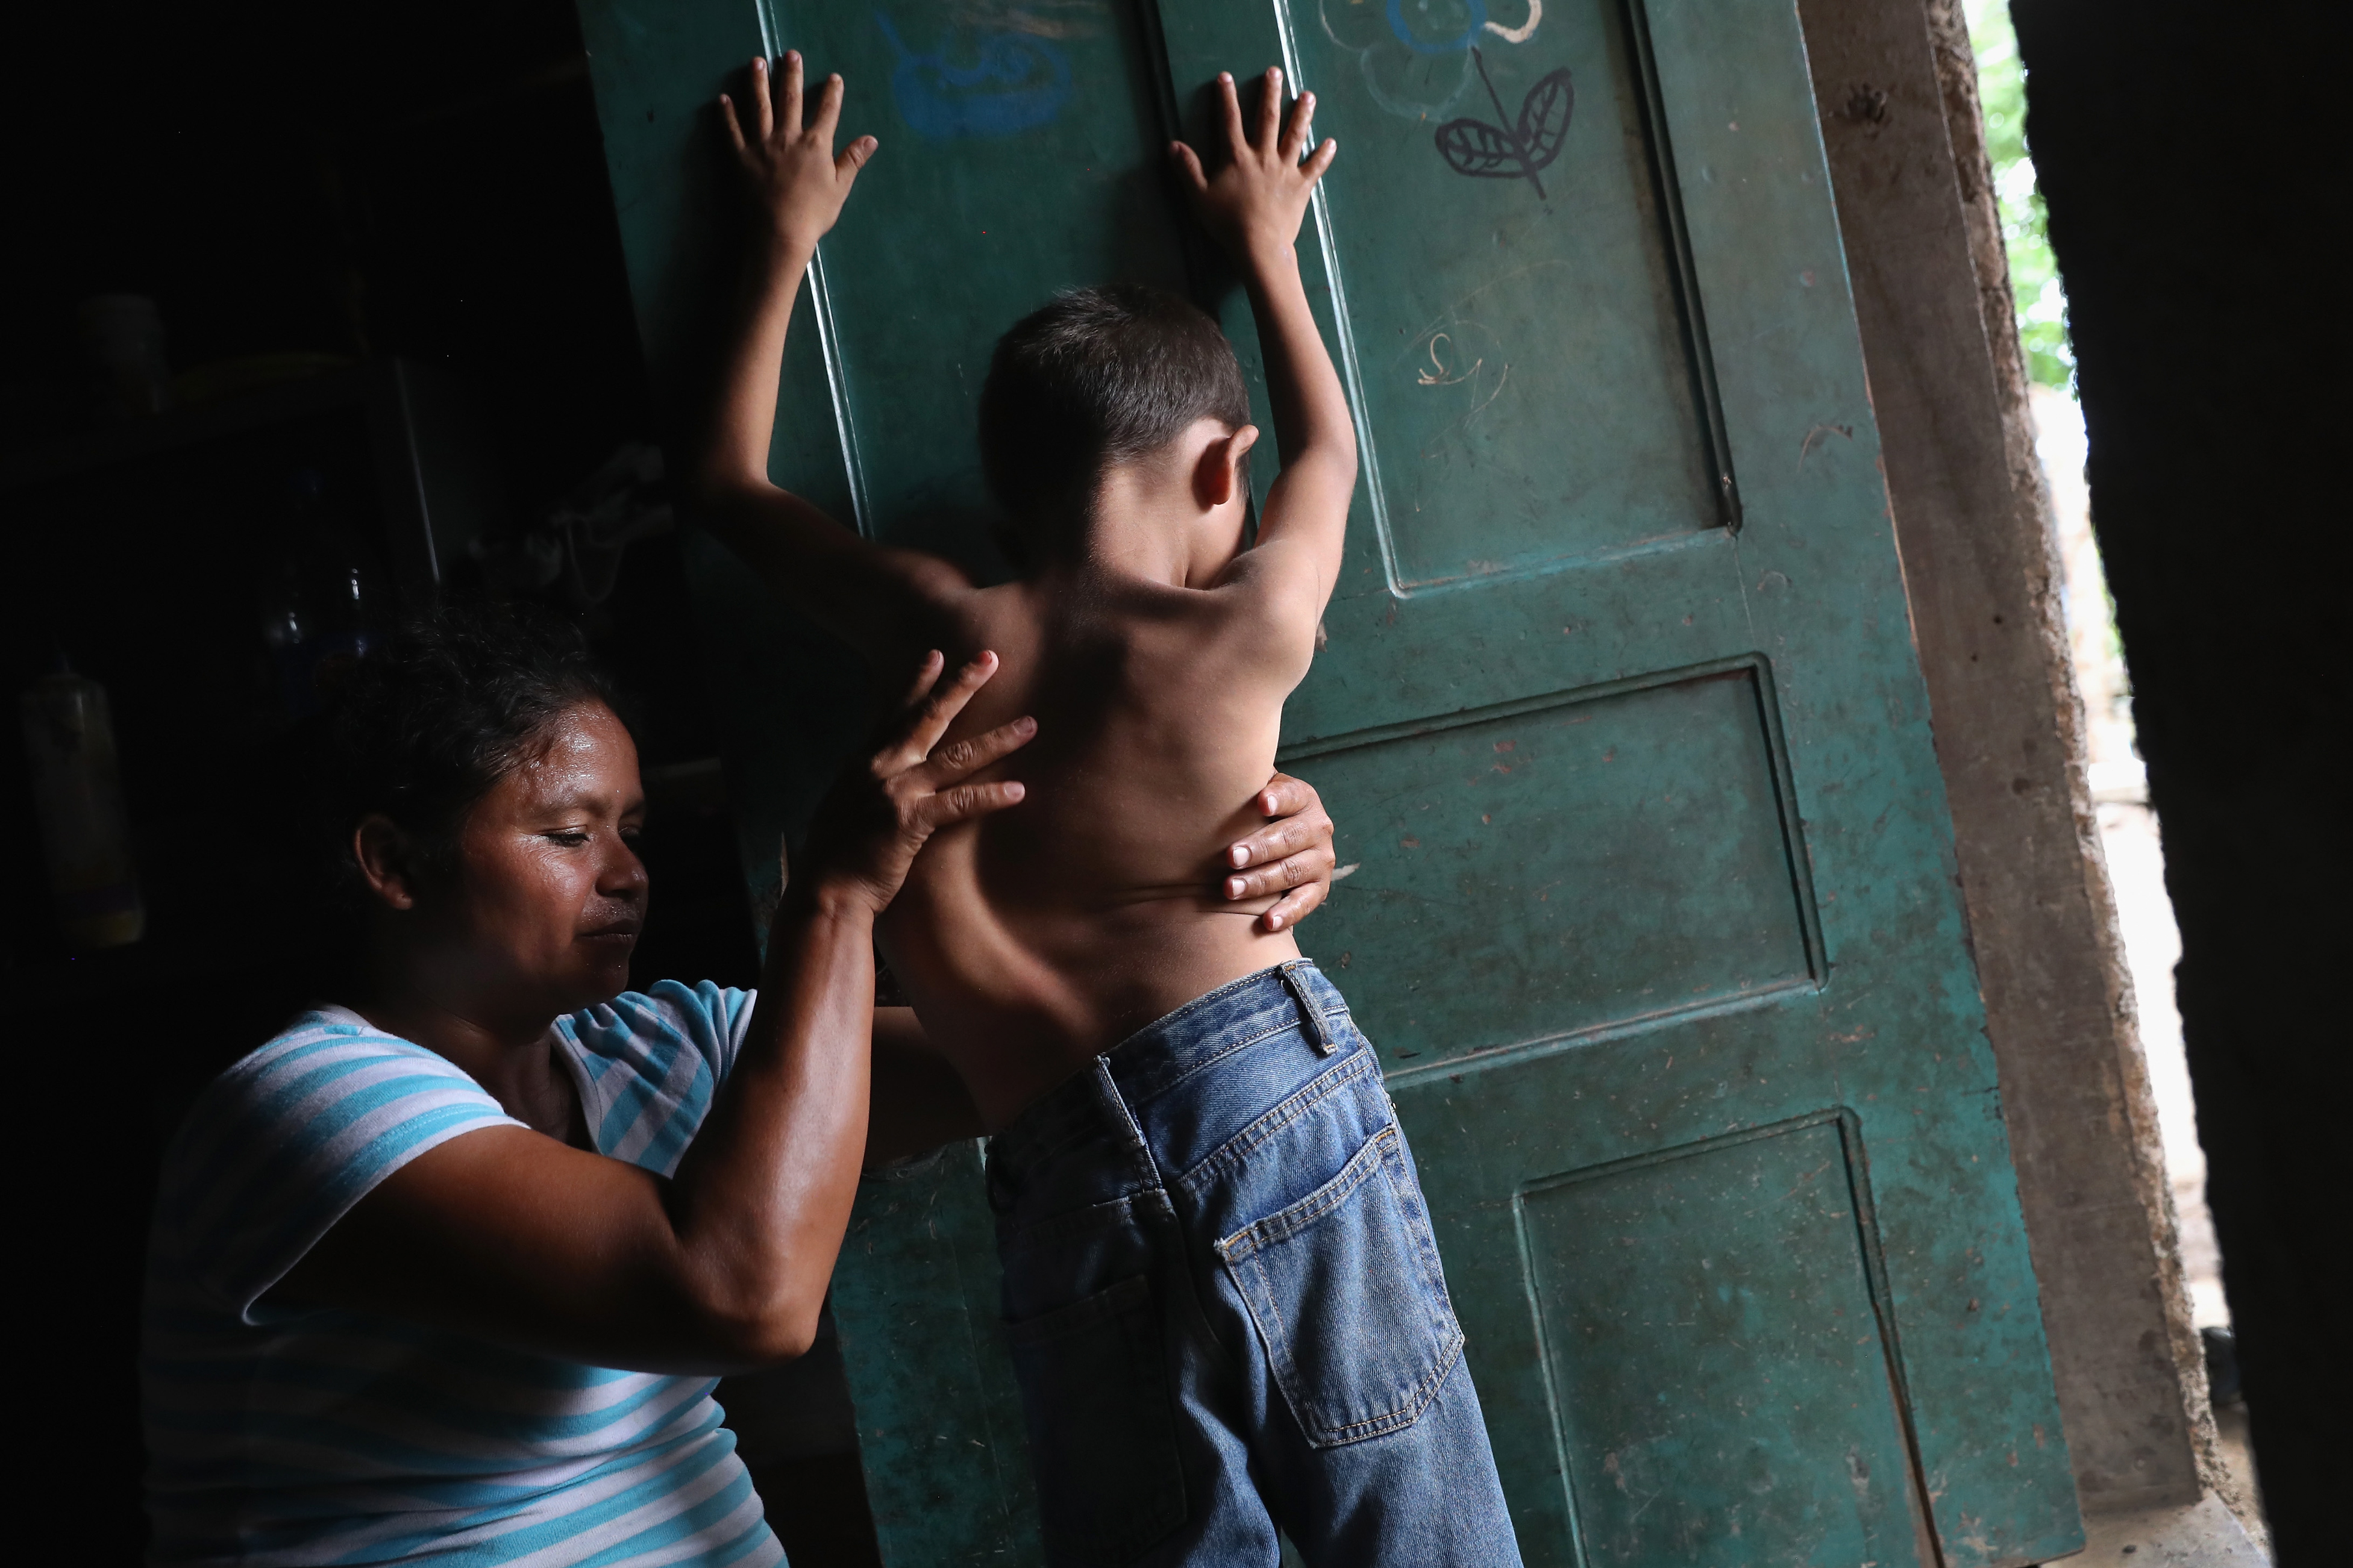 Sonia Morales massages the back of her son Jose Issac Morales, 11, at the door of their one-room home in San Pedro Sula, Honduras on Aug. 20, 2017. The mother of three said that her son's spinal deformation began at age four, but has never been able to afford the $6,000 surgery to correct his spinal condition. The boy's father, Issac Morales, 30, said he tried to immigrate to the U.S. in 2016 to work and send money home but was picked up by U.S. Border Patrol officers in the Arizona desert and deported back to Honduras.